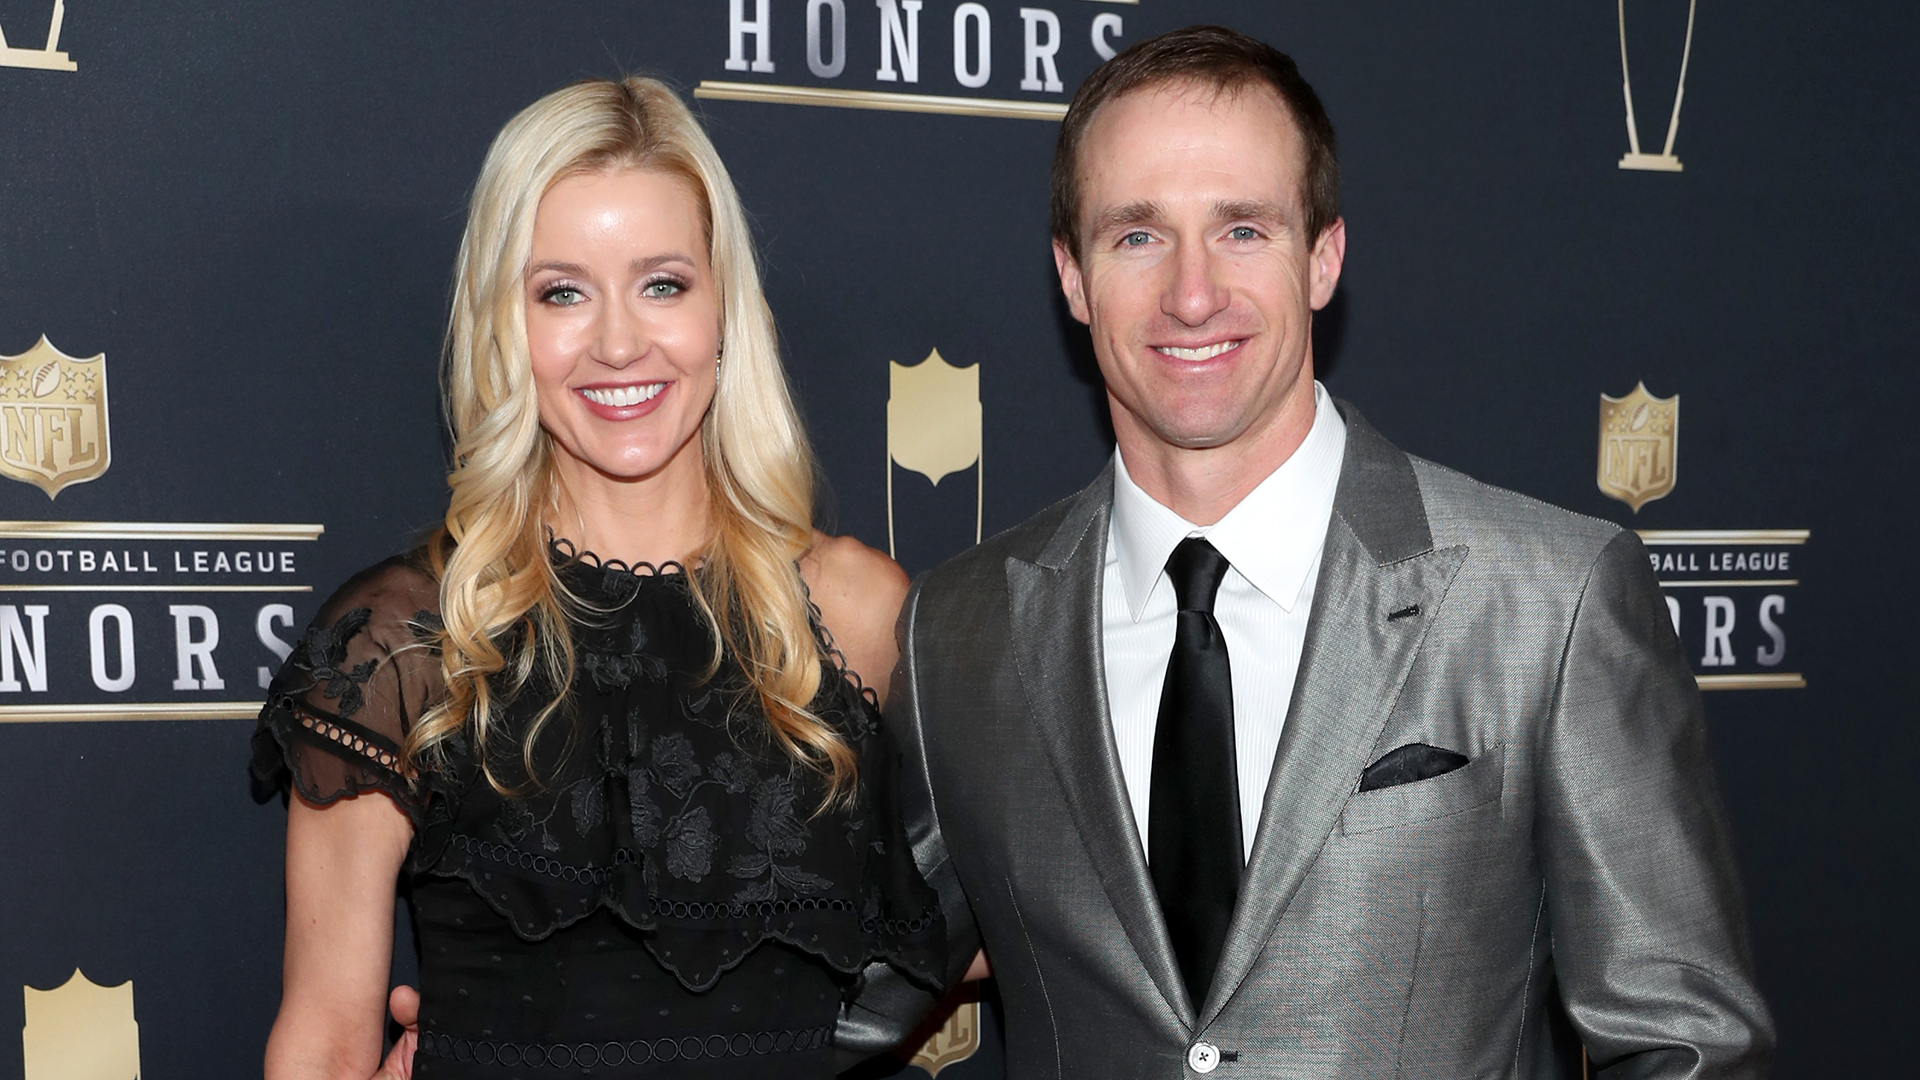 Drew Brees Wife Brittany Says Family Received Death Threats Over Protesting Flag Comments Sporting News